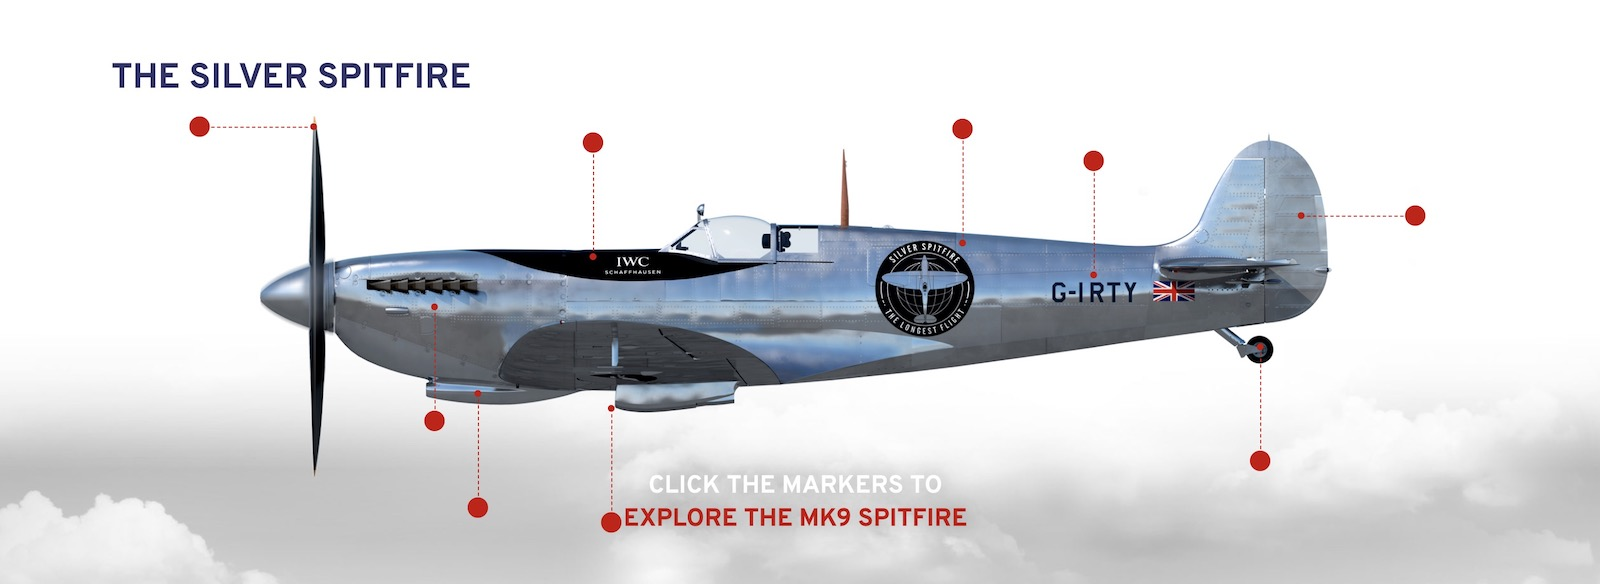 Silver Spitfire - The Longest Flight | Frost Creative Limited